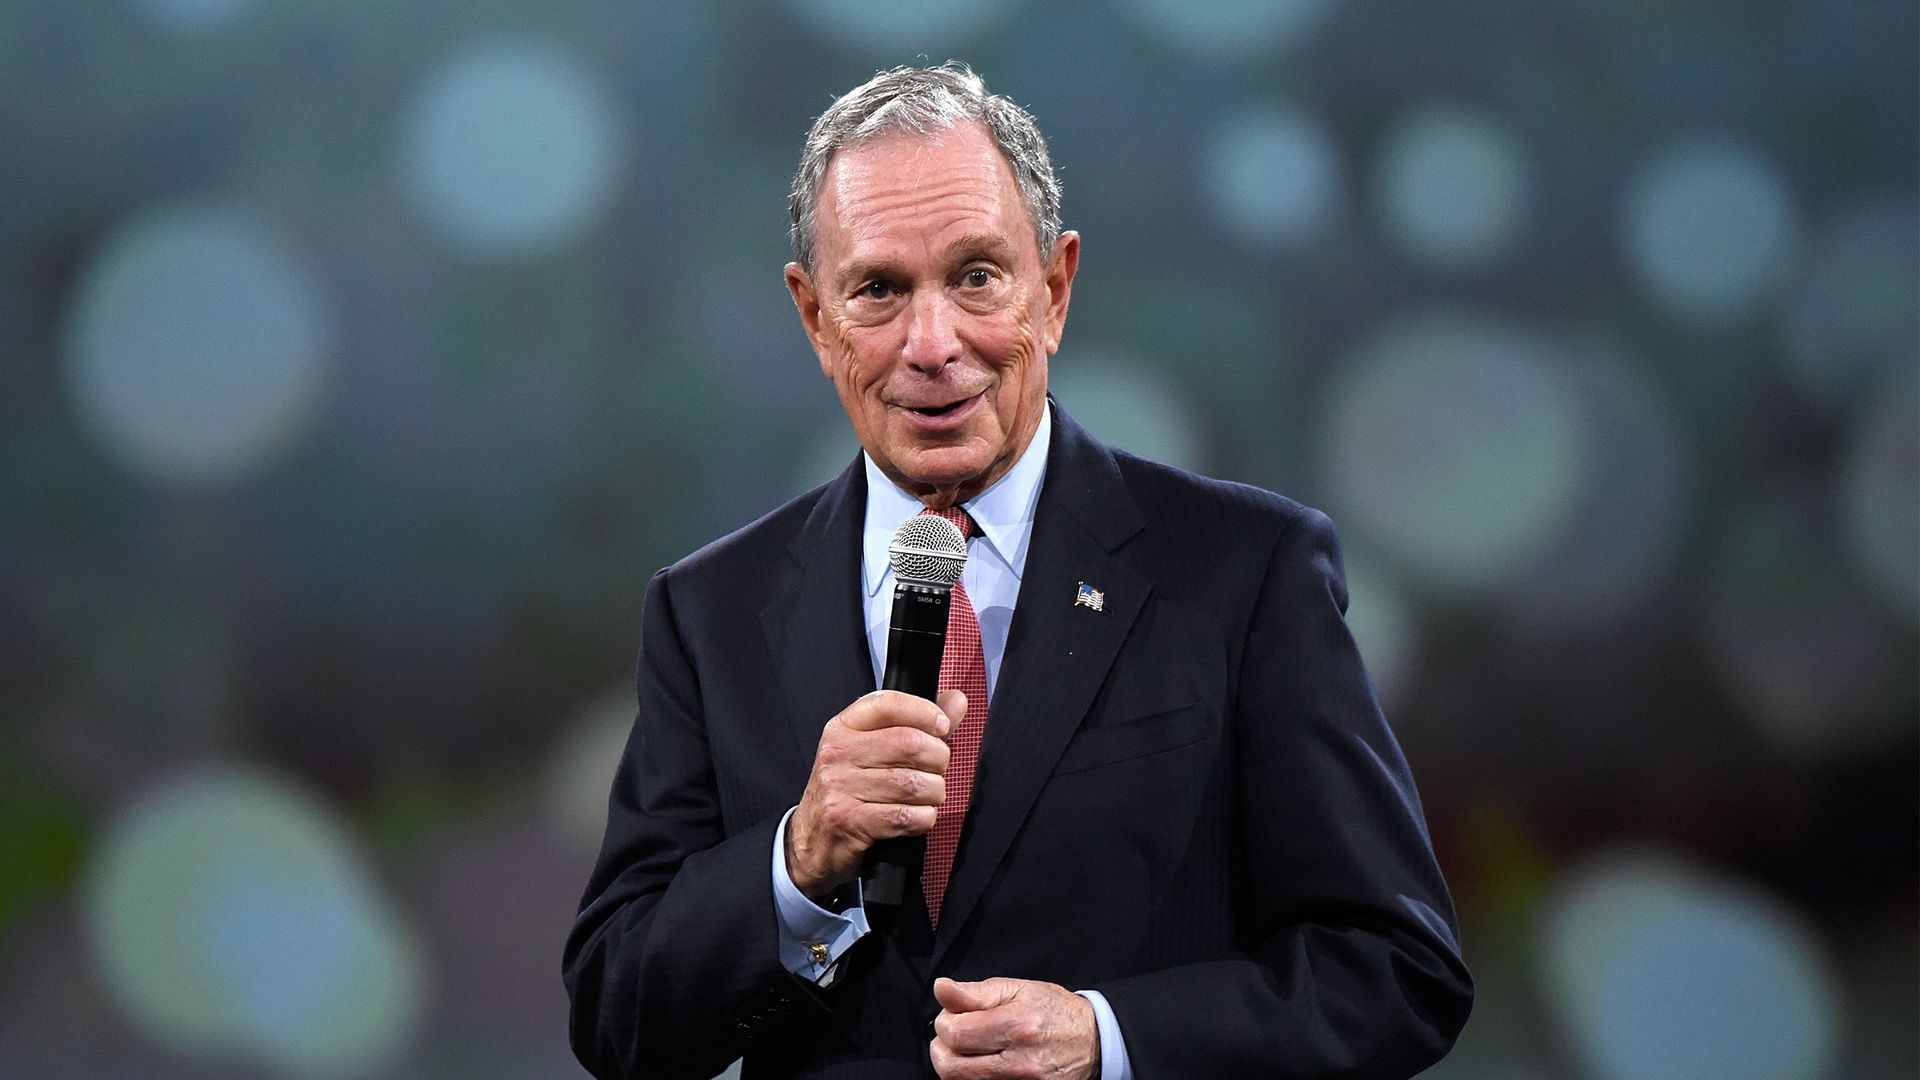 Michael Bloomberg with a mic in his hand